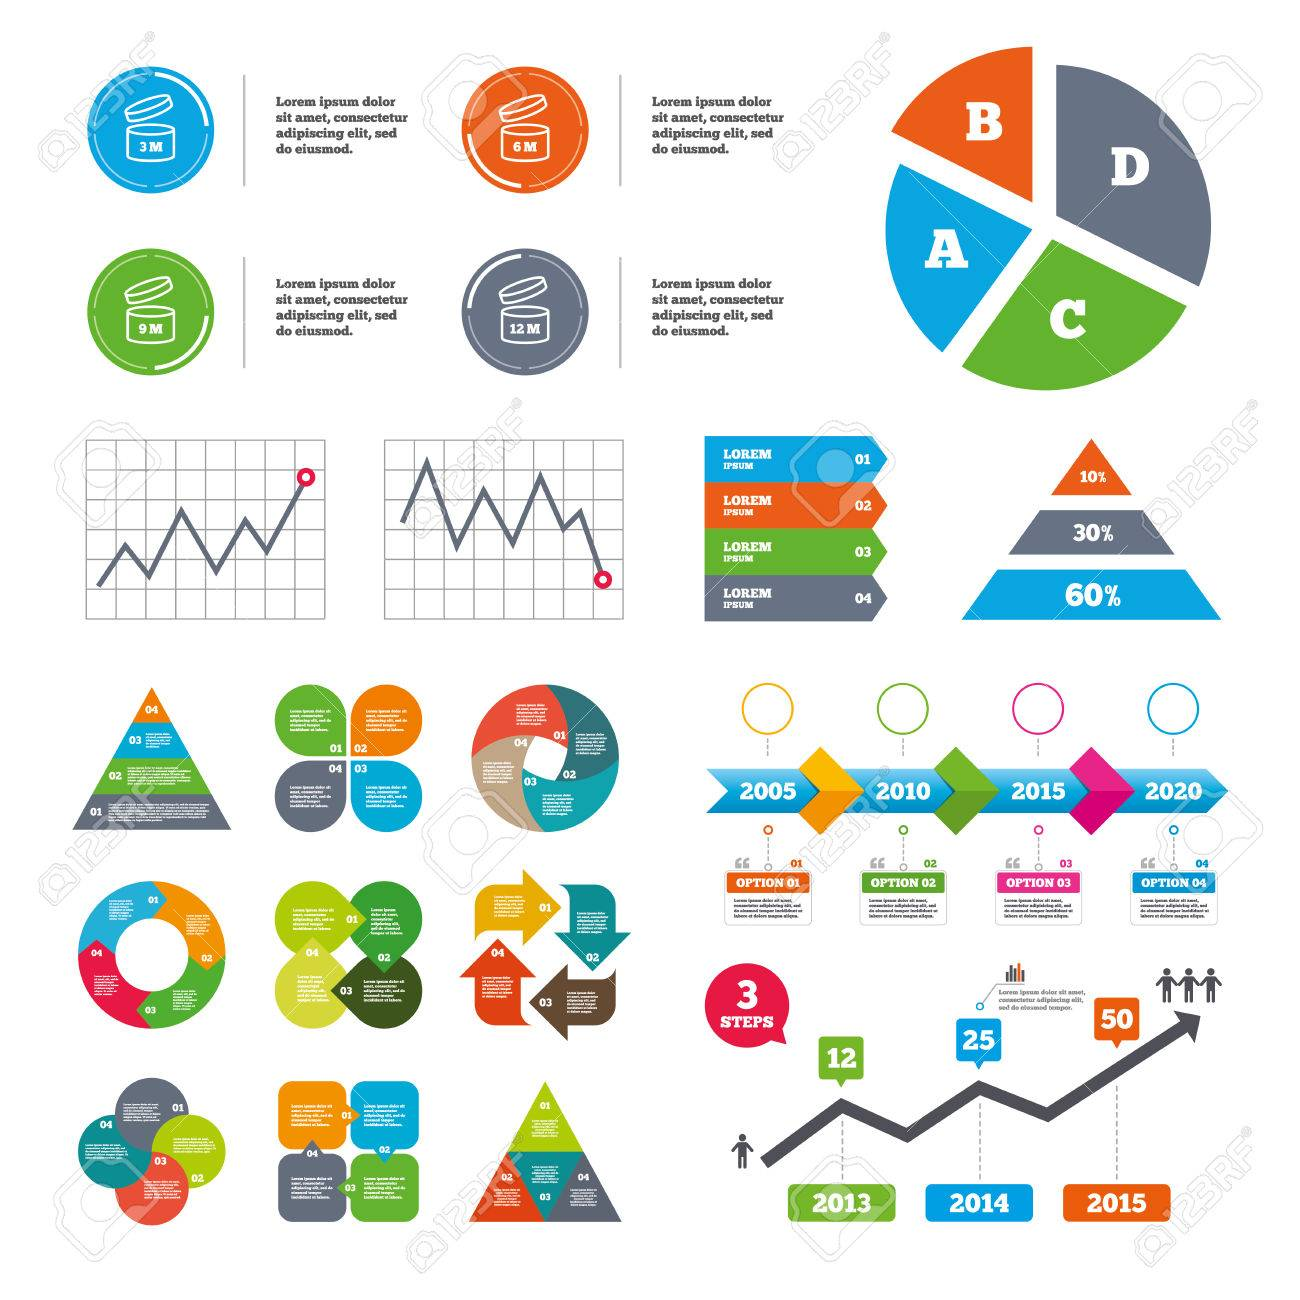 Data pie chart and graphs after opening use icons expiration data pie chart and graphs after opening use icons expiration date 6 12 nvjuhfo Gallery